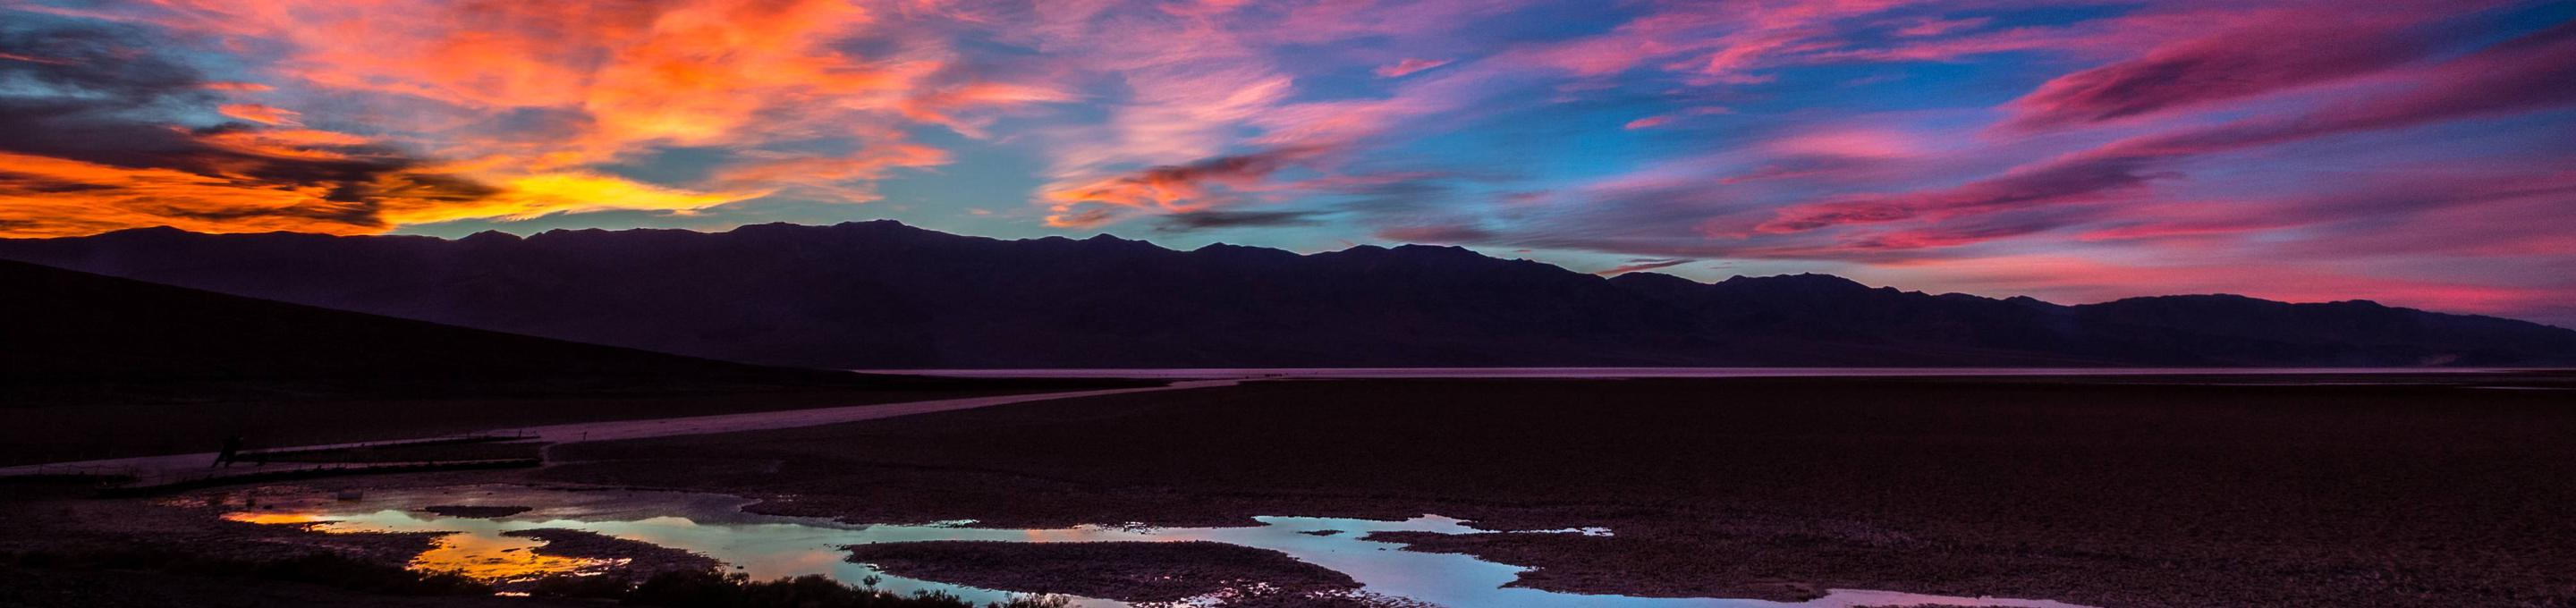 colorful sunset over wide landscape of mountains and small pool of waterDeath Valley Sunset